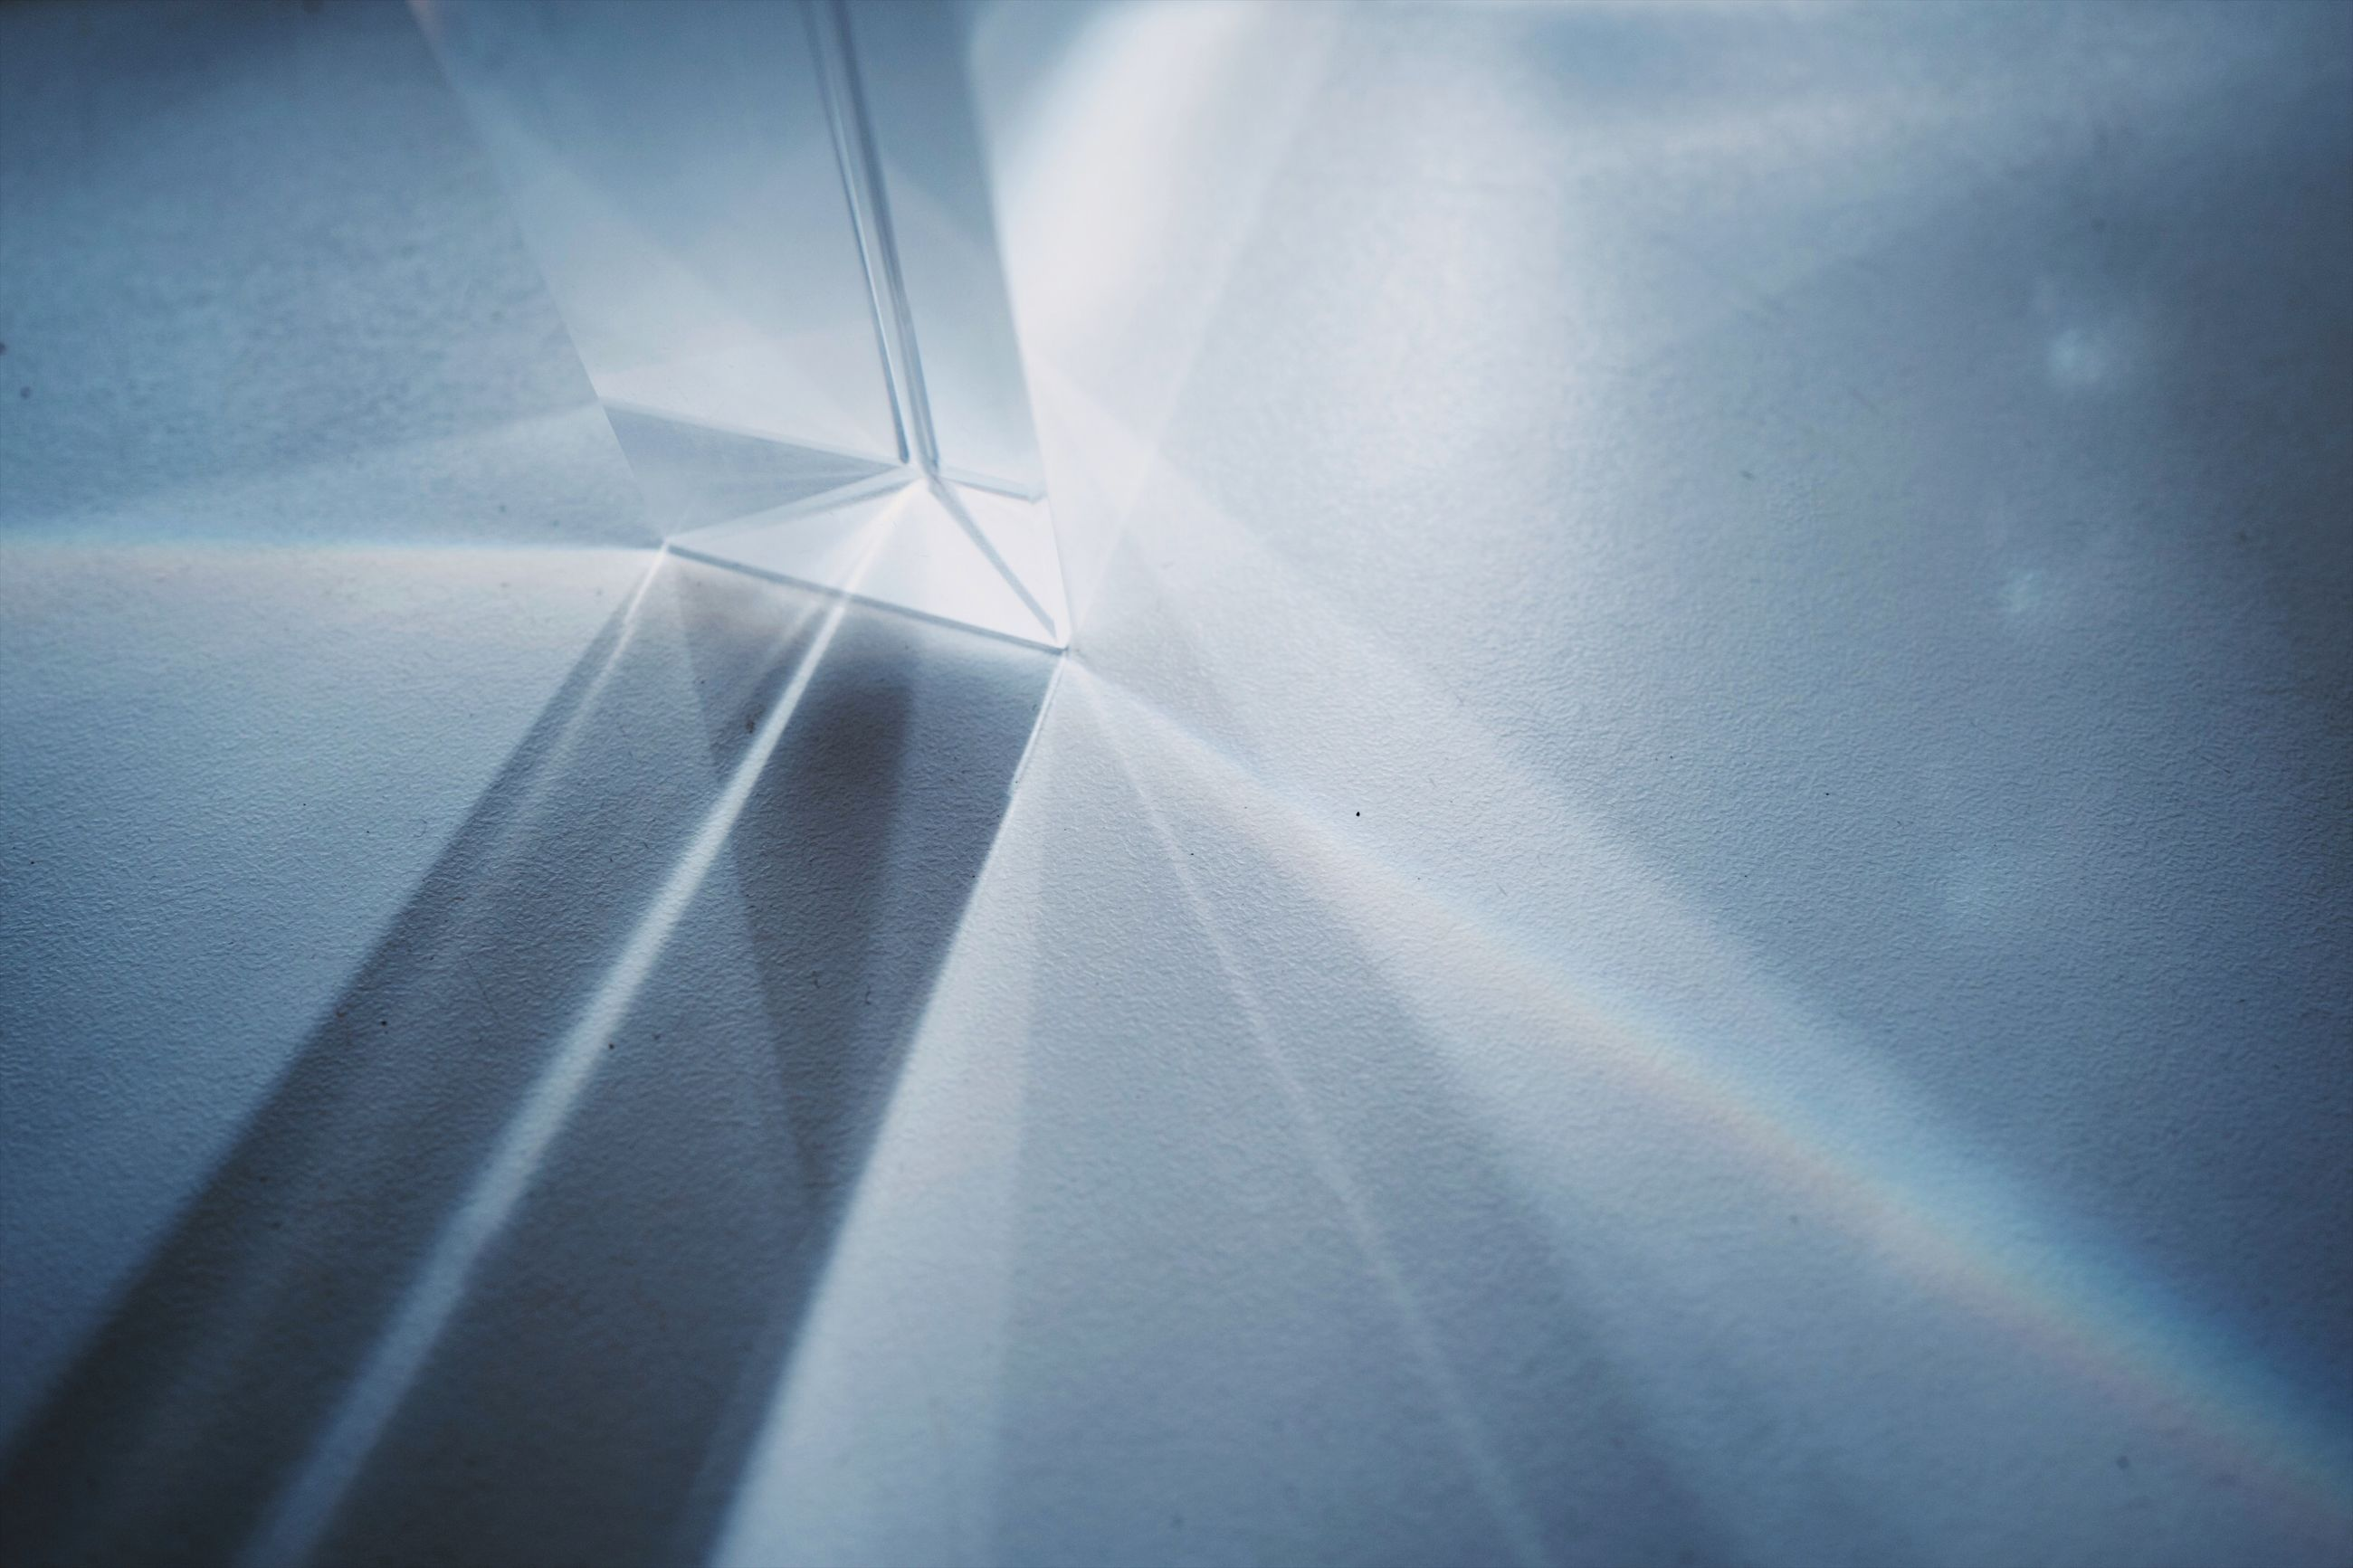 sunlight, no people, day, indoors, pattern, nature, backgrounds, full frame, close-up, sunbeam, shadow, blue, falling, low angle view, reflection, selective focus, textured, lens flare, flooring